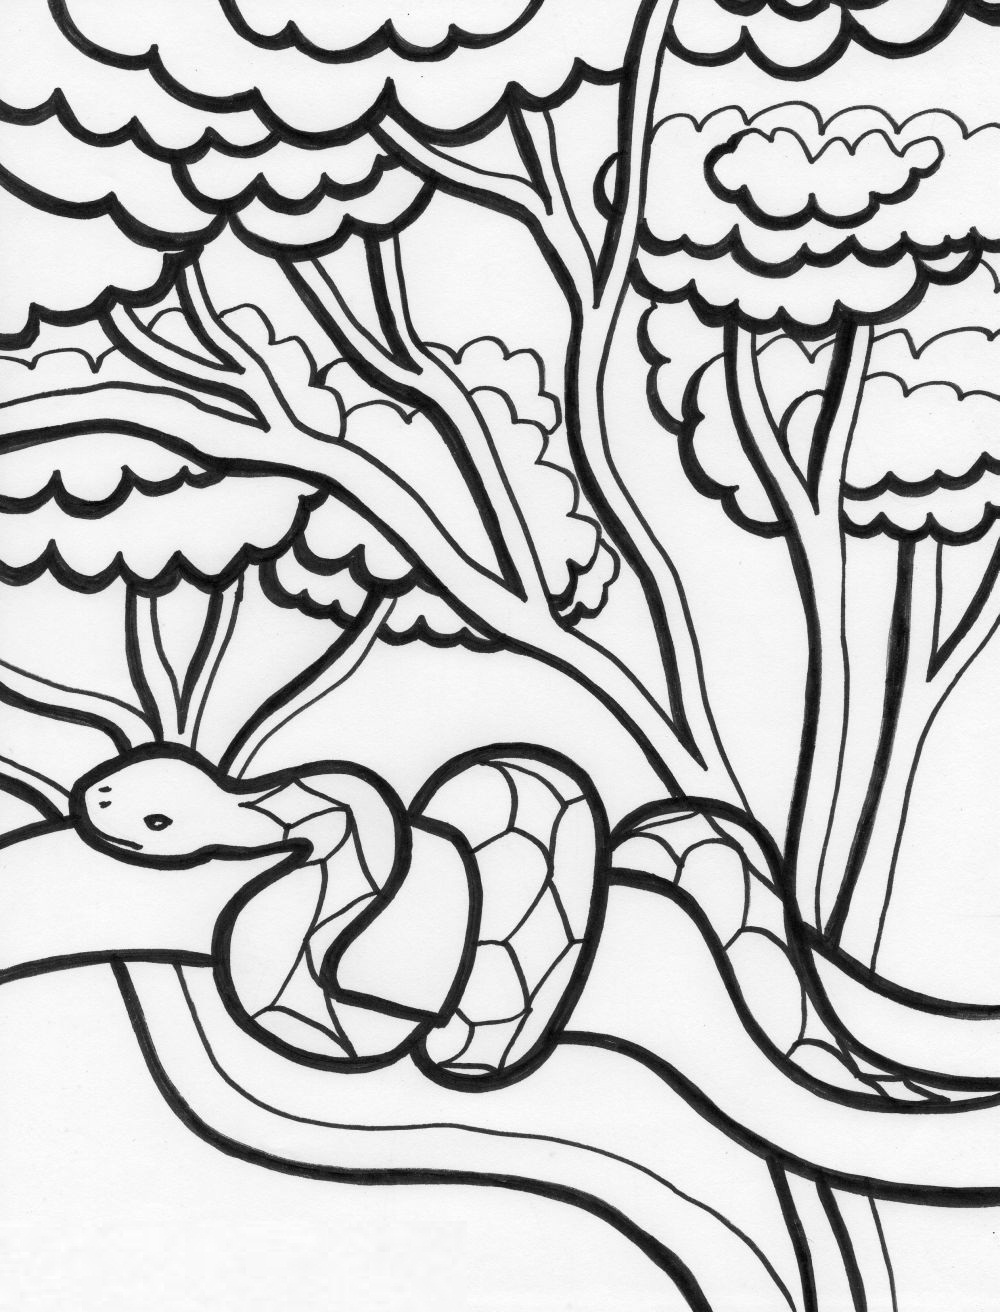 Free Printable Snake Coloring Pages For Kids | Animal Place